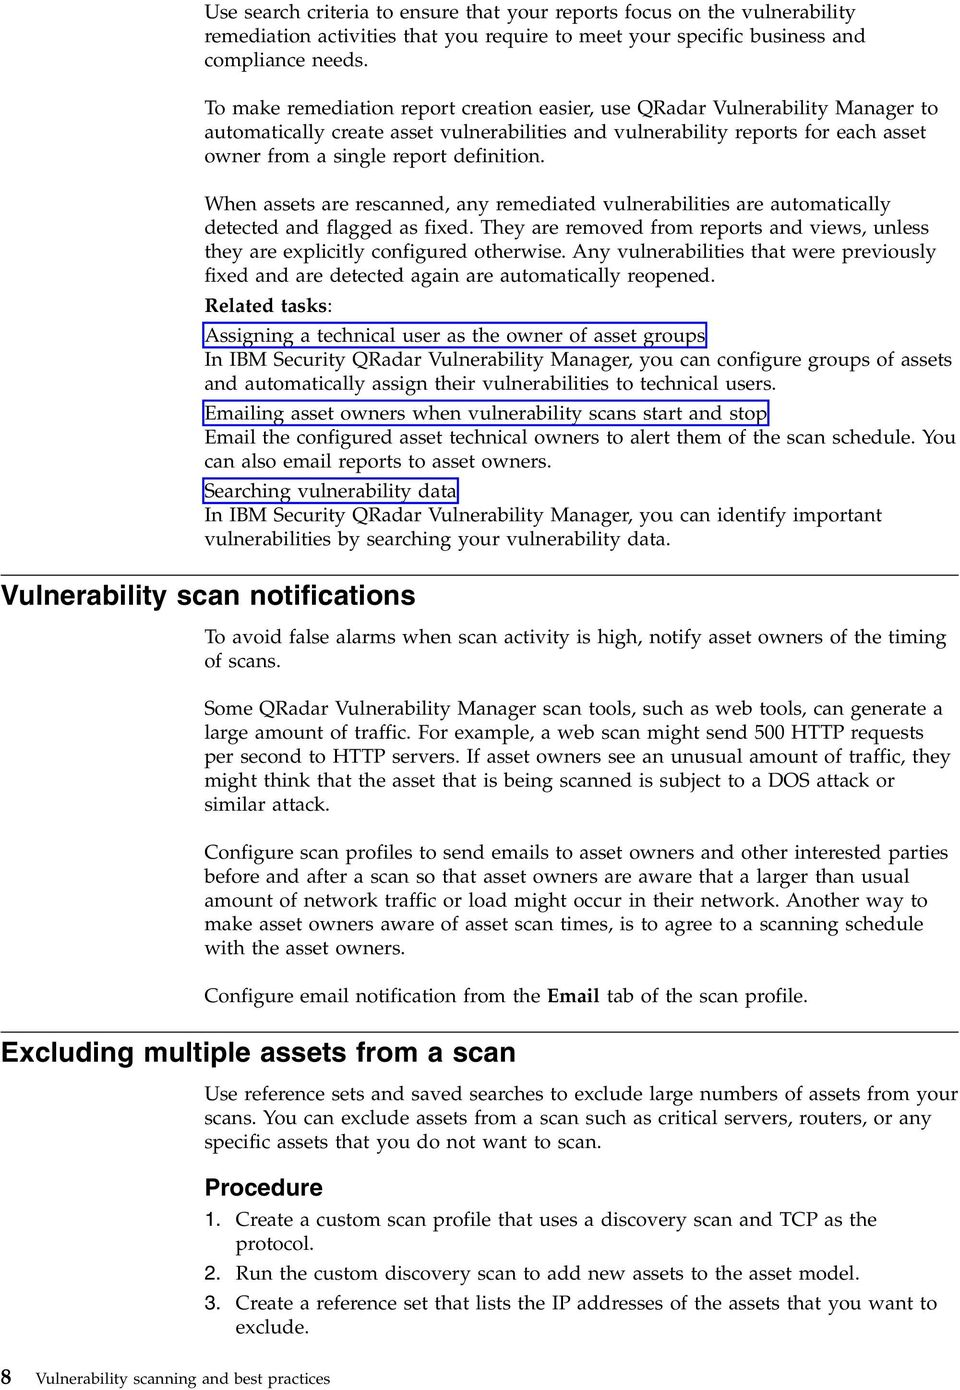 definition. When assets are rescanned, any remediated vulnerabilities are automatically detected and flagged as fixed.